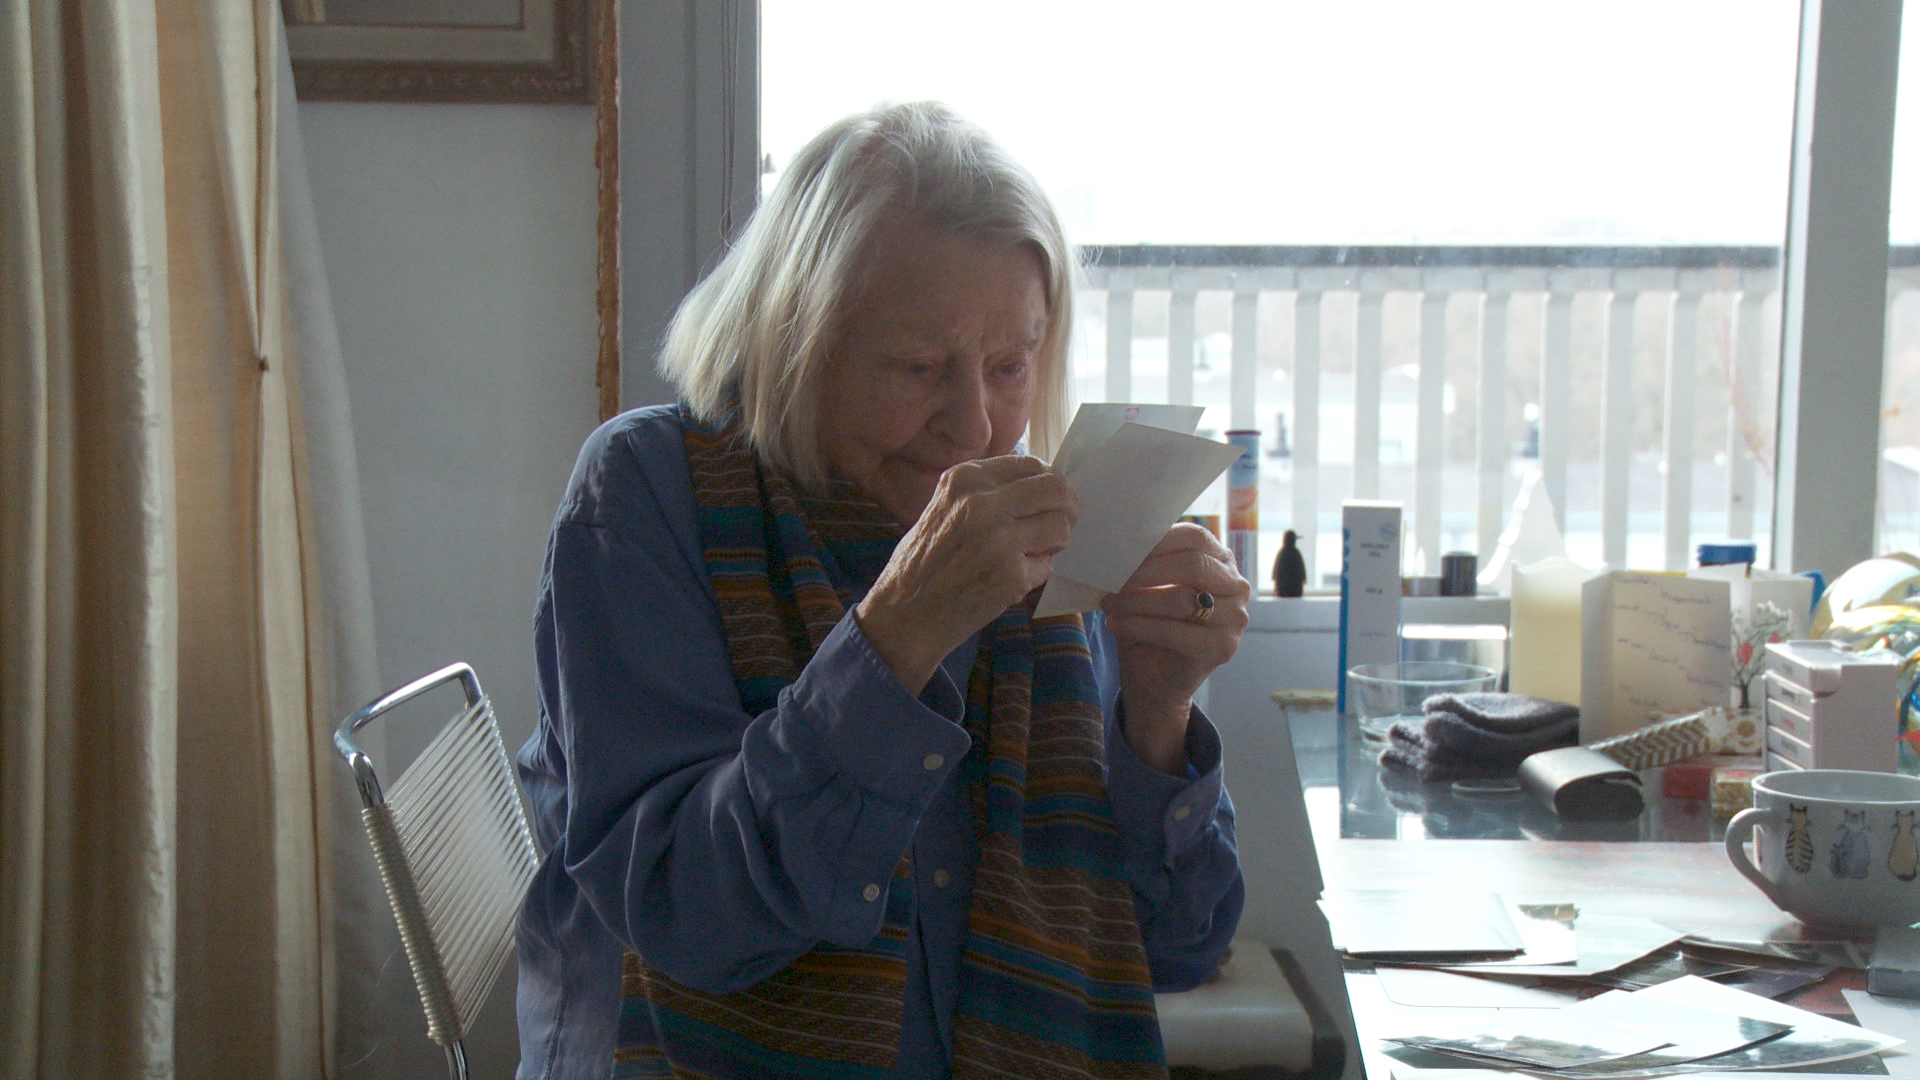 Still from the film Een klein beetje nog. Elisabeth is sitting at her dining table looking at old pictures.